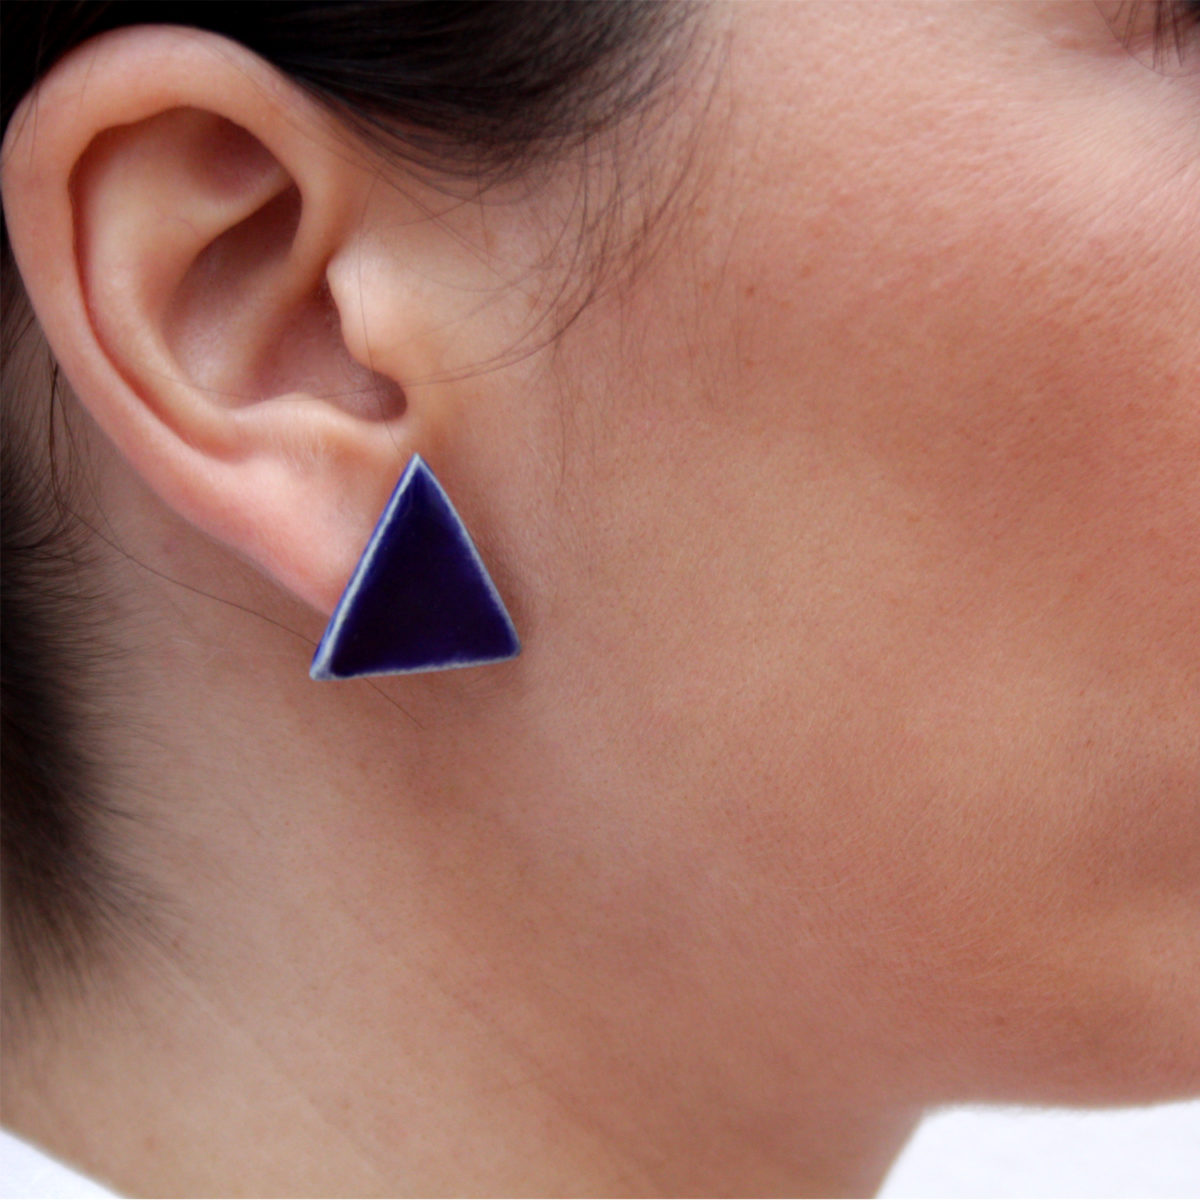 Pendientes de cerámica triangulares hechos a mano color azul intenso cobalto Bowtery minimalista. Minimalist handmade ceramic triangle earrings blue cobalt